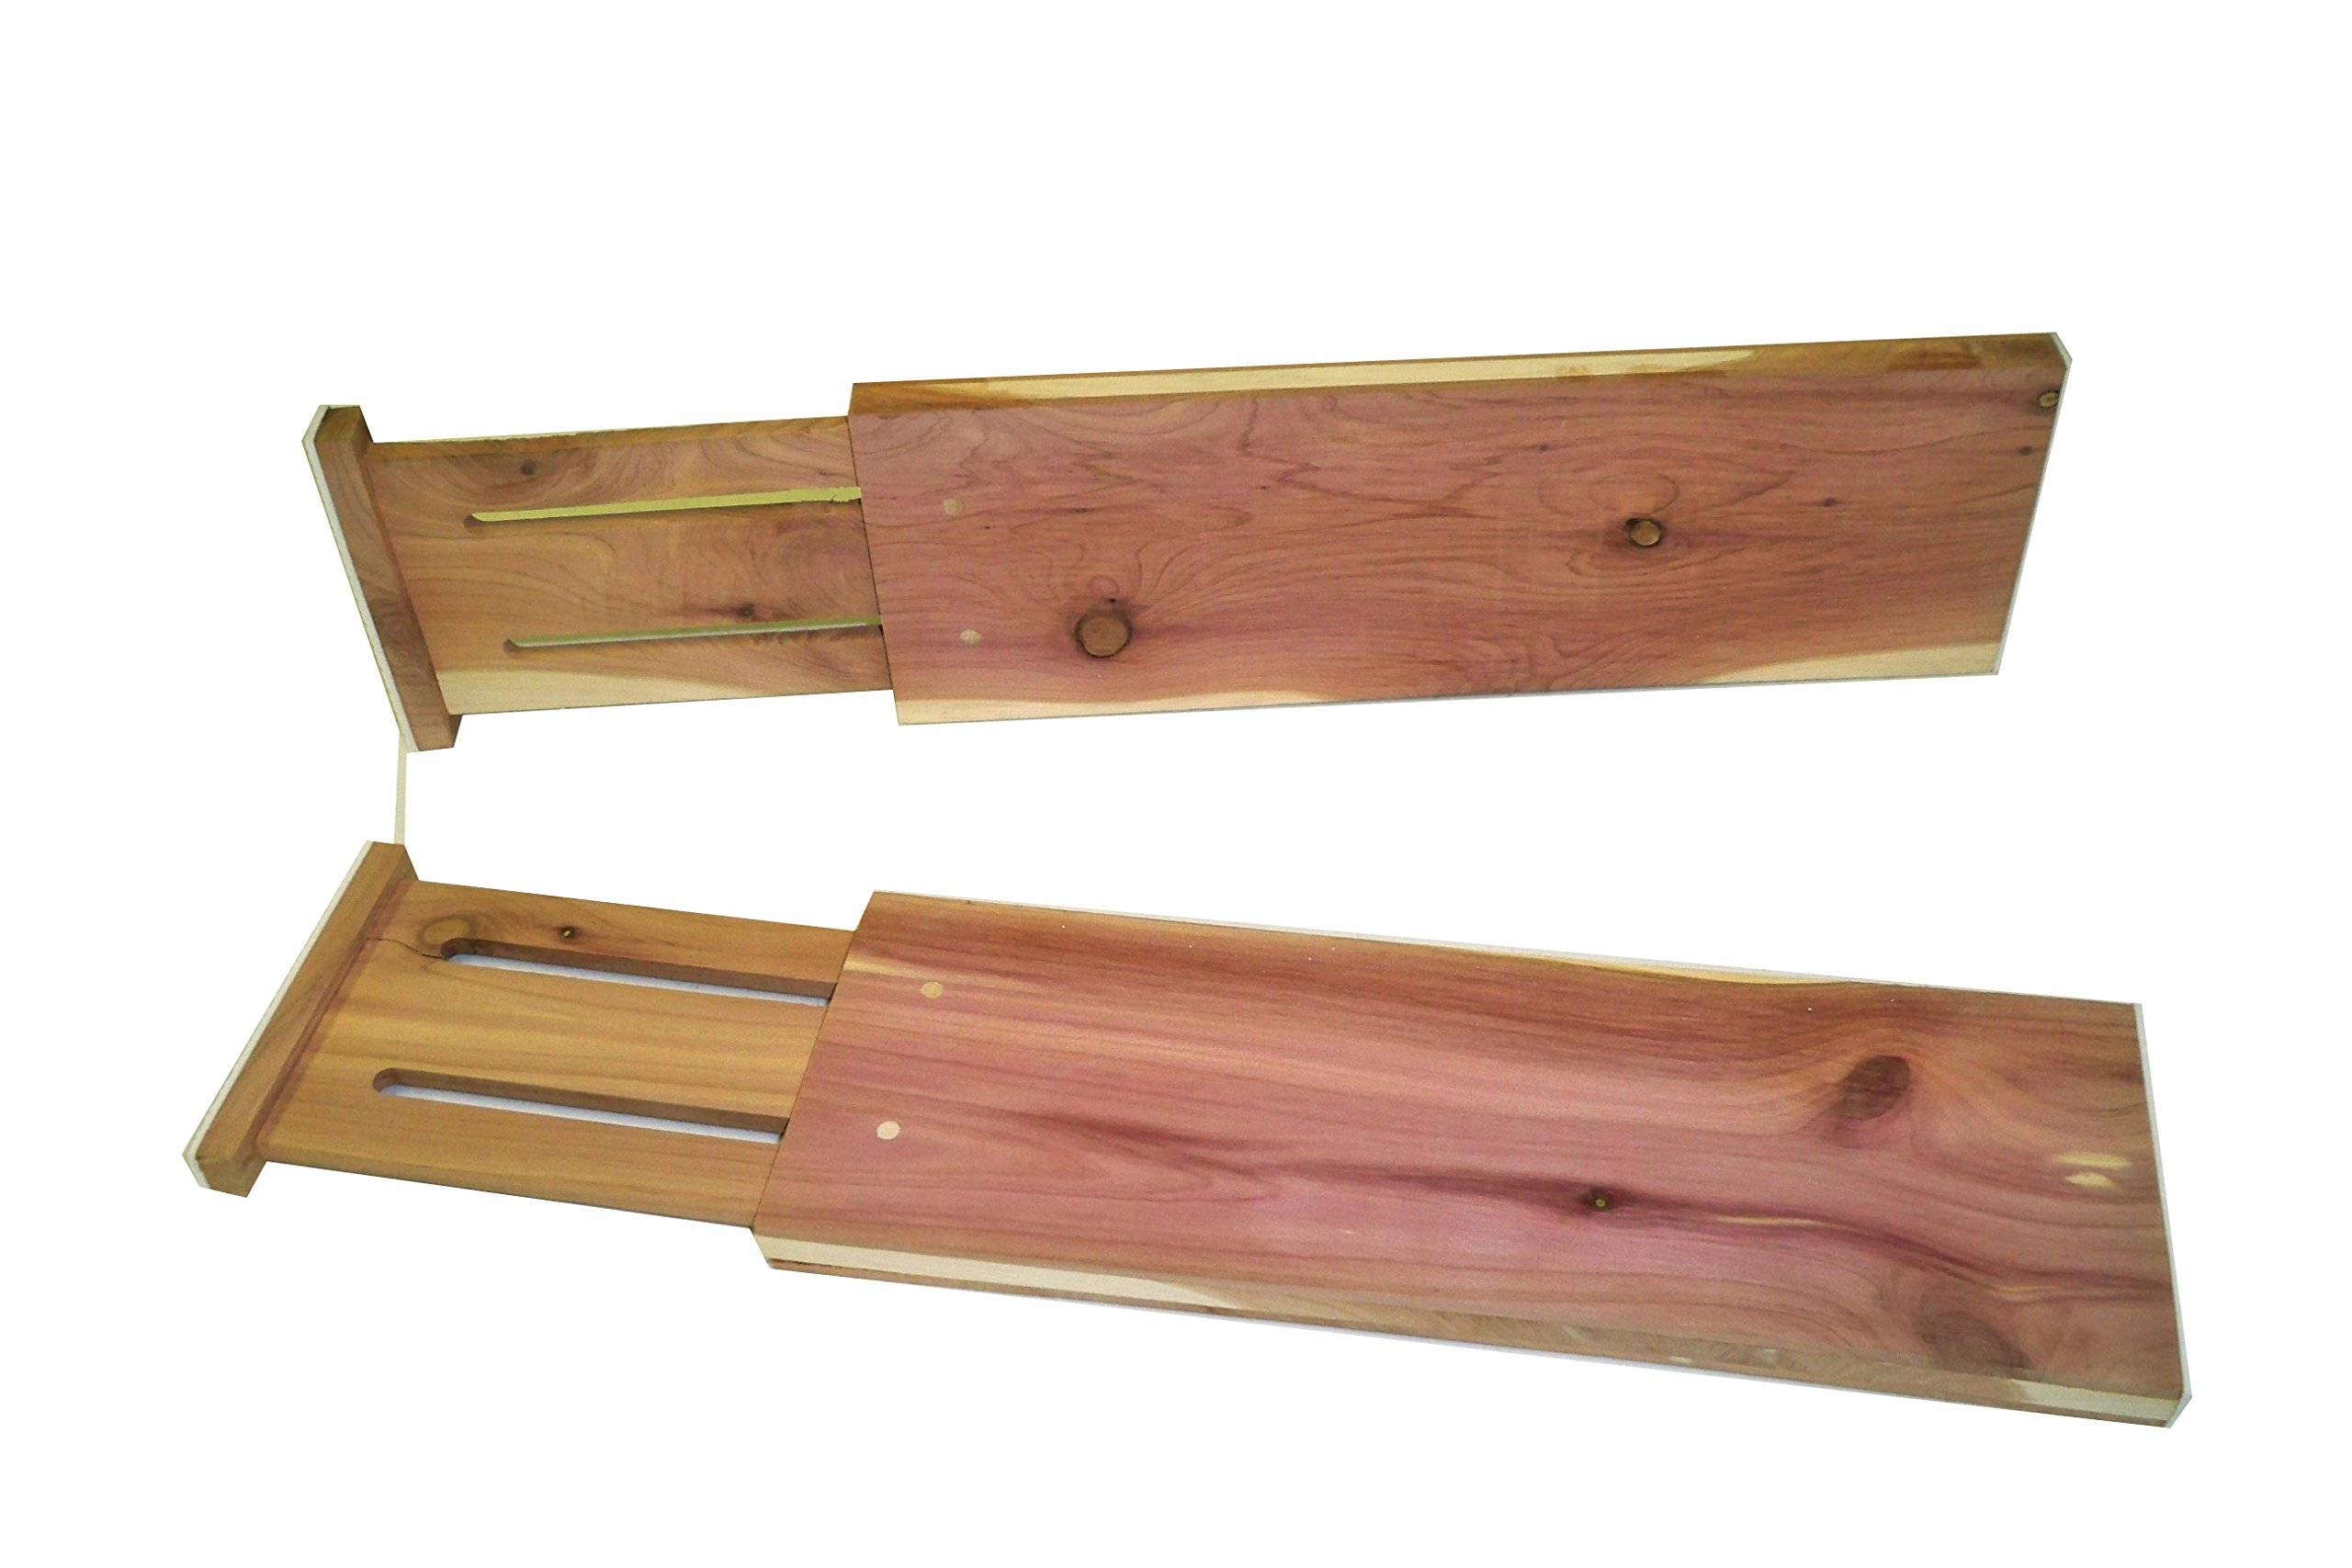 Axis International Marketing Drawer Dividers 3 pc Cedar Expandable for Dresser, Set, Piece by Axis International Marketing (Image #2)